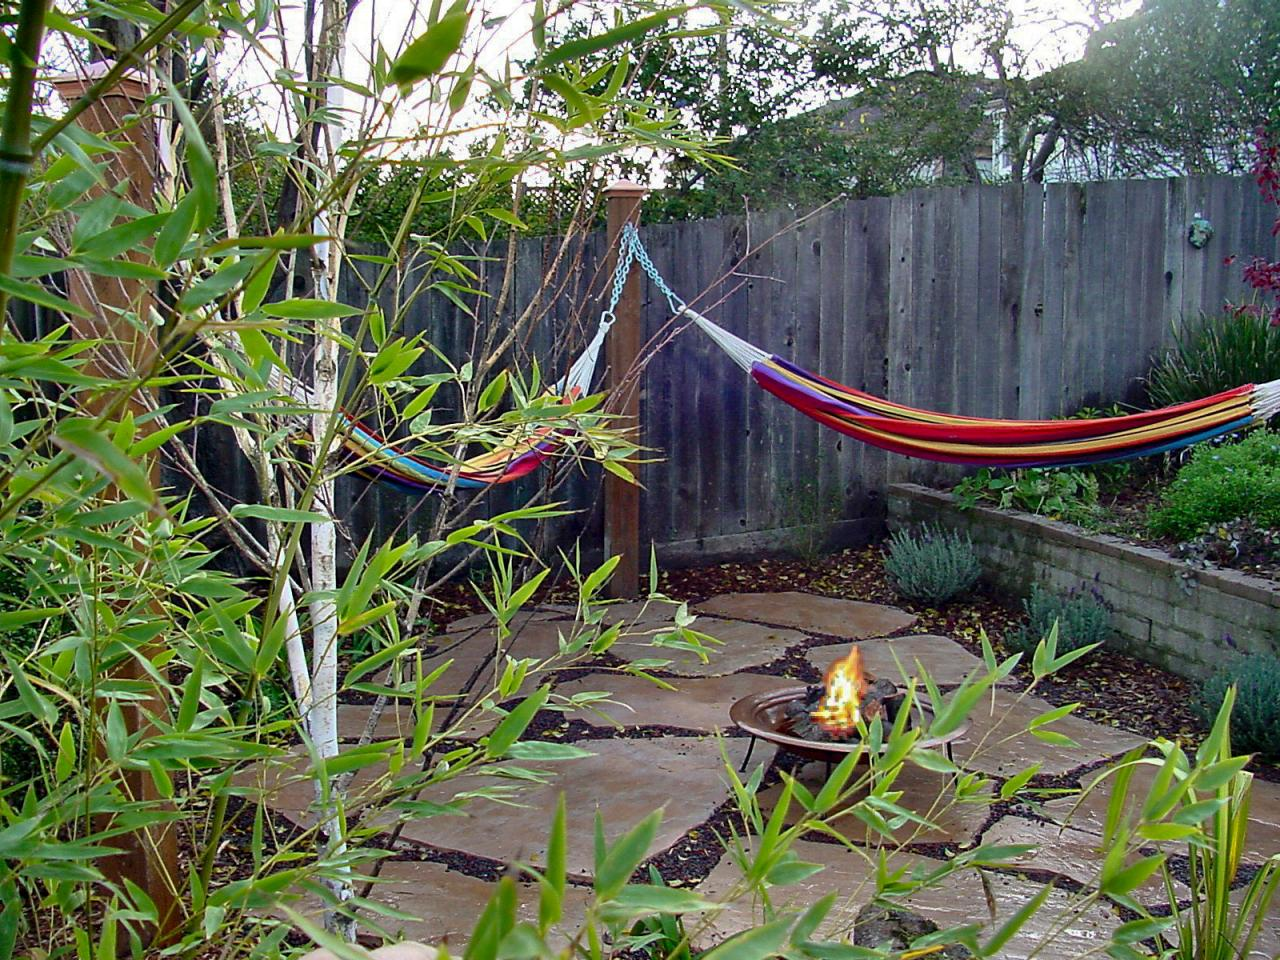 How To Make A DIY Hammock Out Of Mudcloth